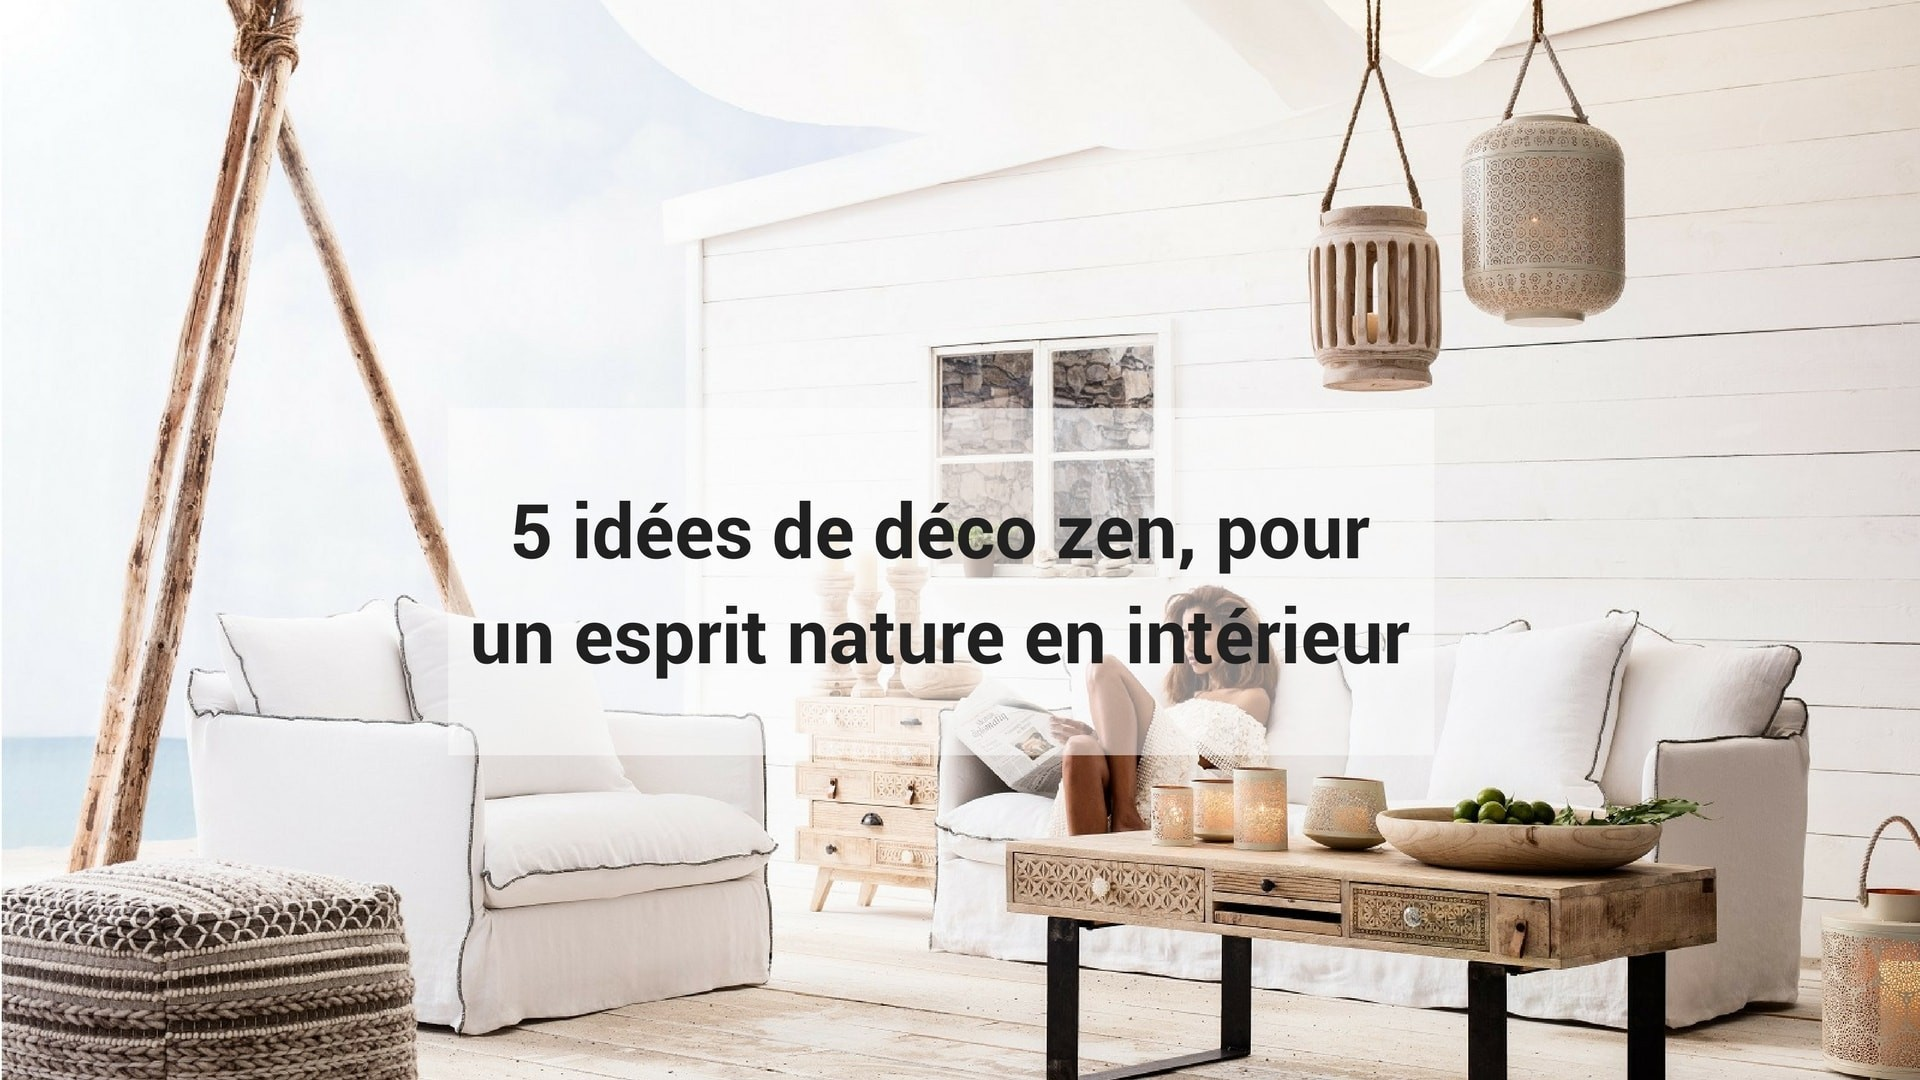 5 id es de d co zen pour un esprit nature en int rieur kare click. Black Bedroom Furniture Sets. Home Design Ideas